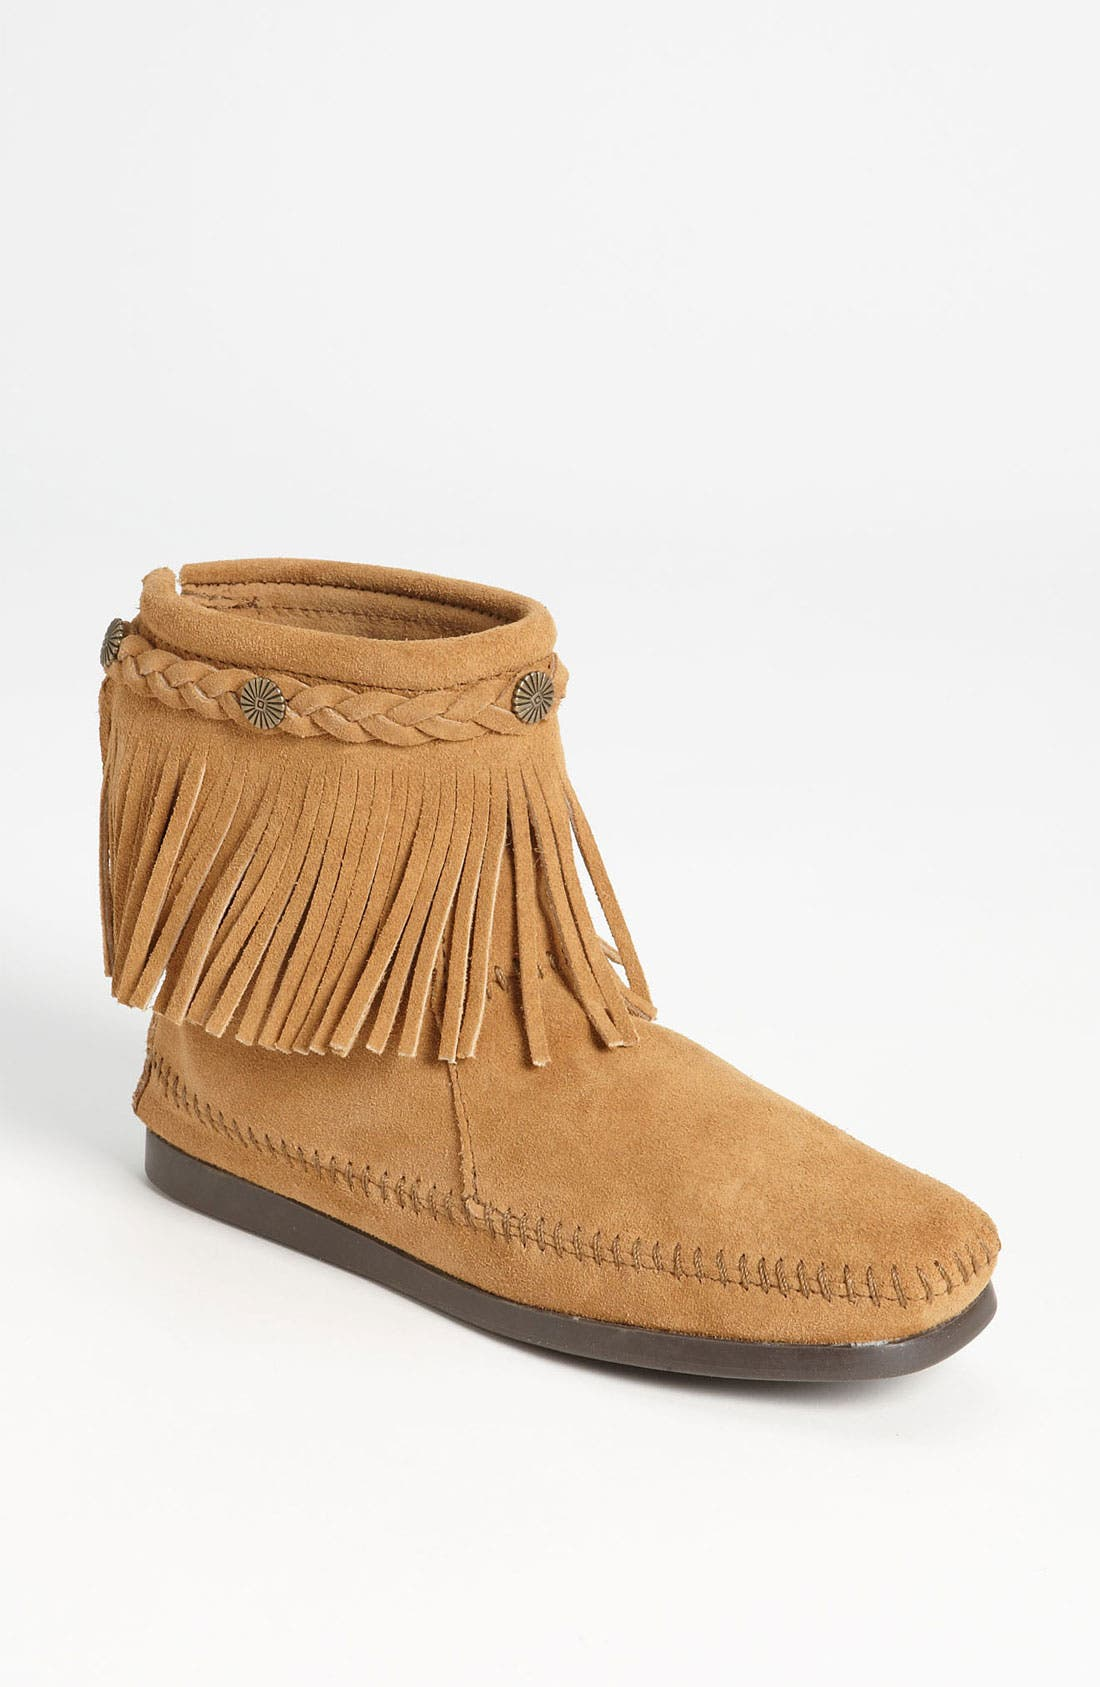 Fringed Moccasin Bootie,                         Main,                         color, Taupe